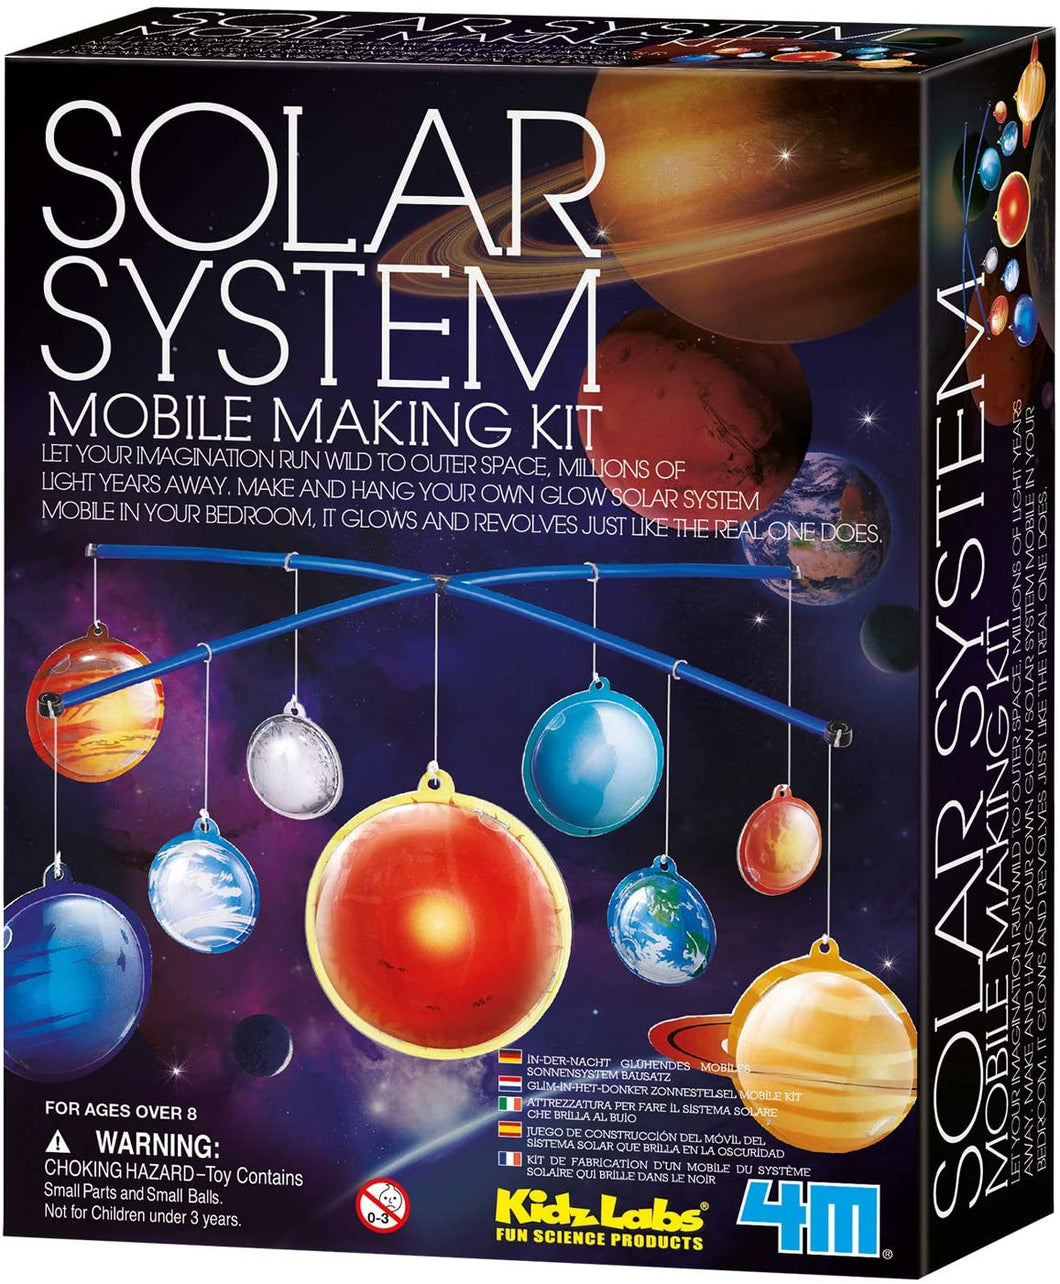 Solar System Mobile Making Kit